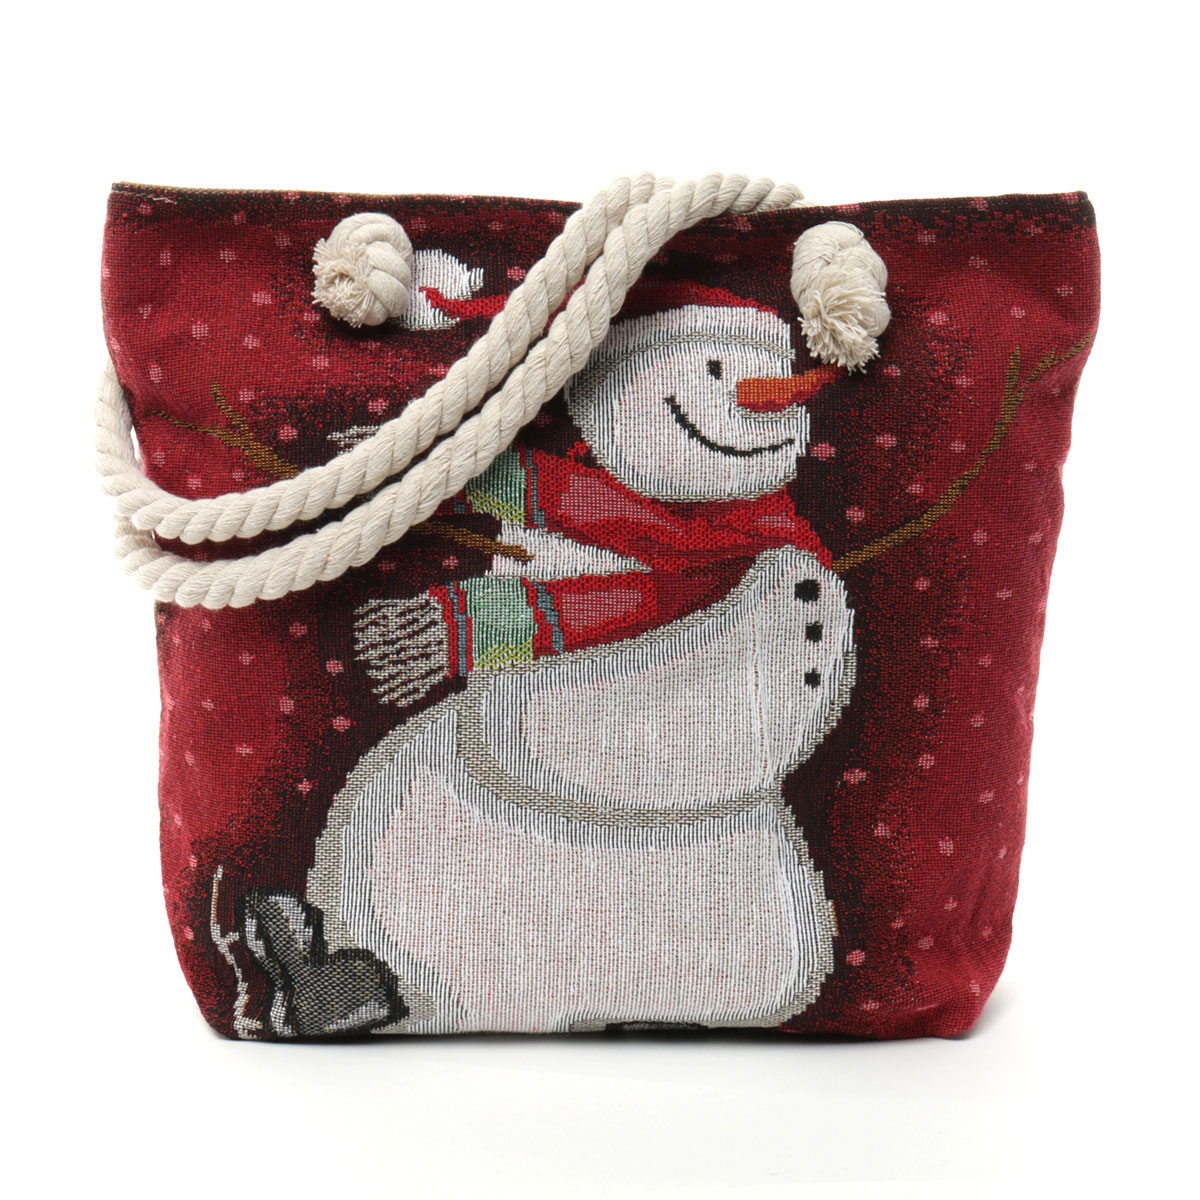 Skating Snowman Tapestry Bag with Adjustable Shoulder Strap, Lin